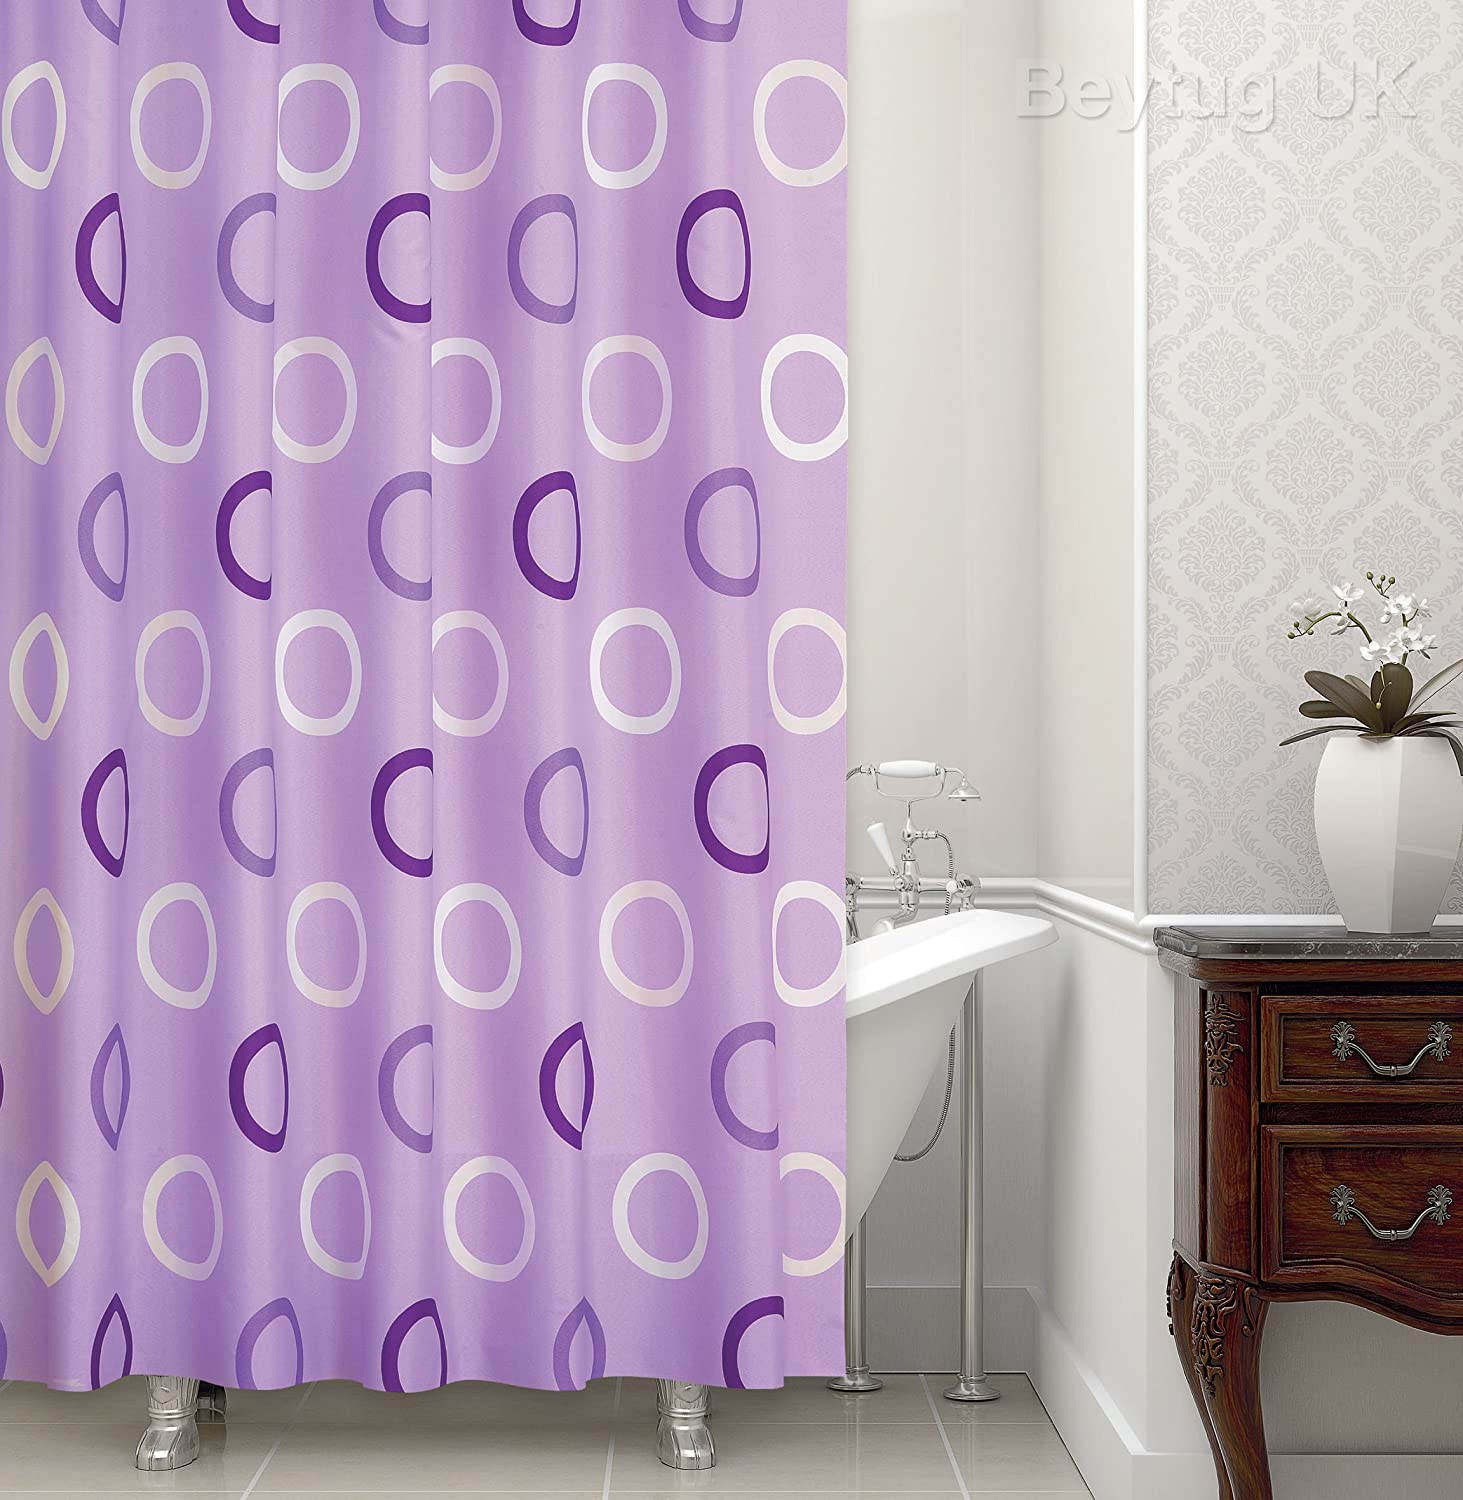 Beautiful lilac pattern shower curtain extra long - 180CM wide x ...